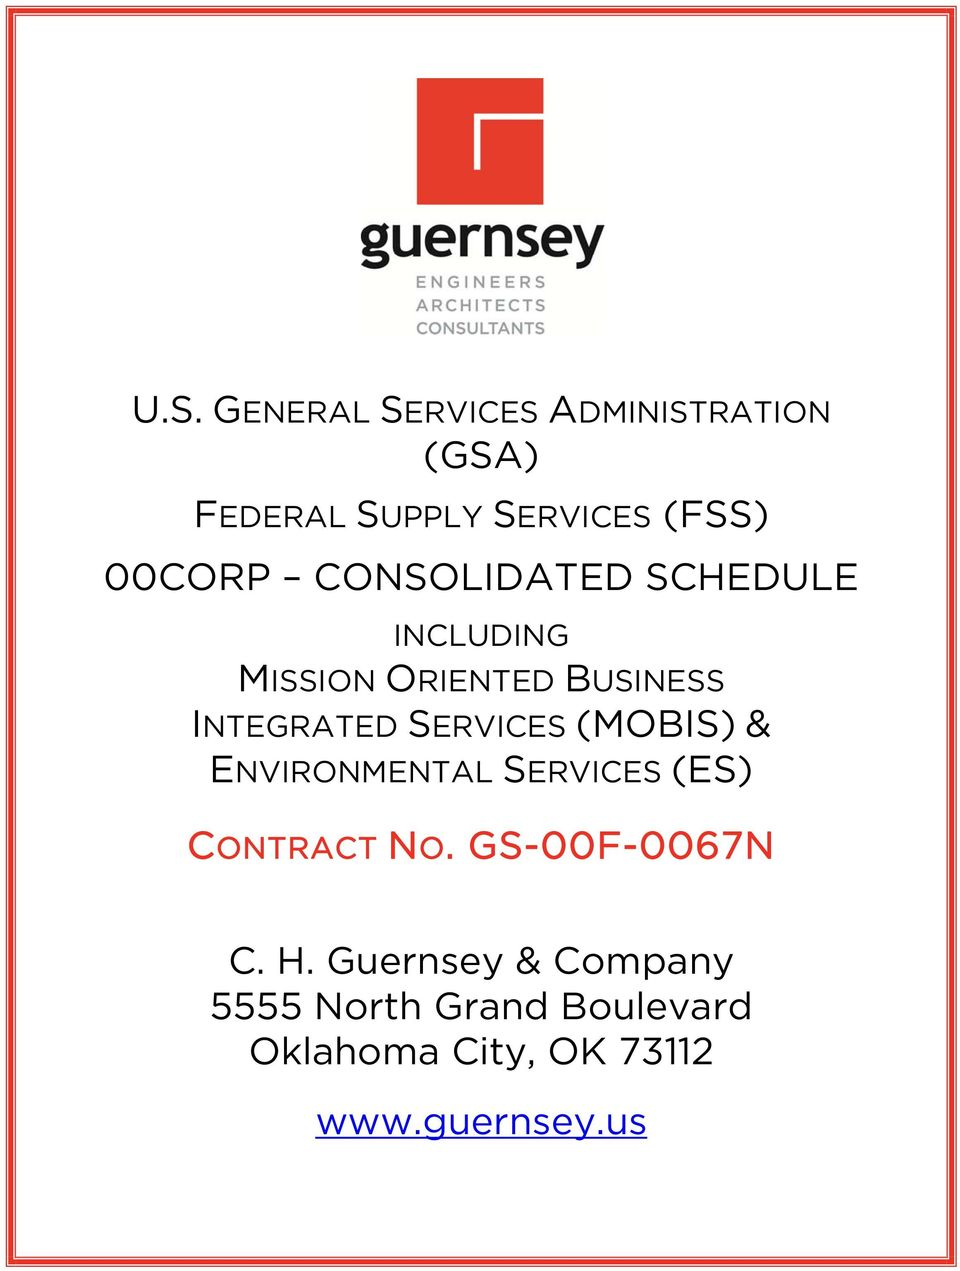 c h guernsey company 5555 north grand boulevard oklahoma city ok pdf free download c h guernsey company 5555 north grand boulevard oklahoma city ok pdf free download